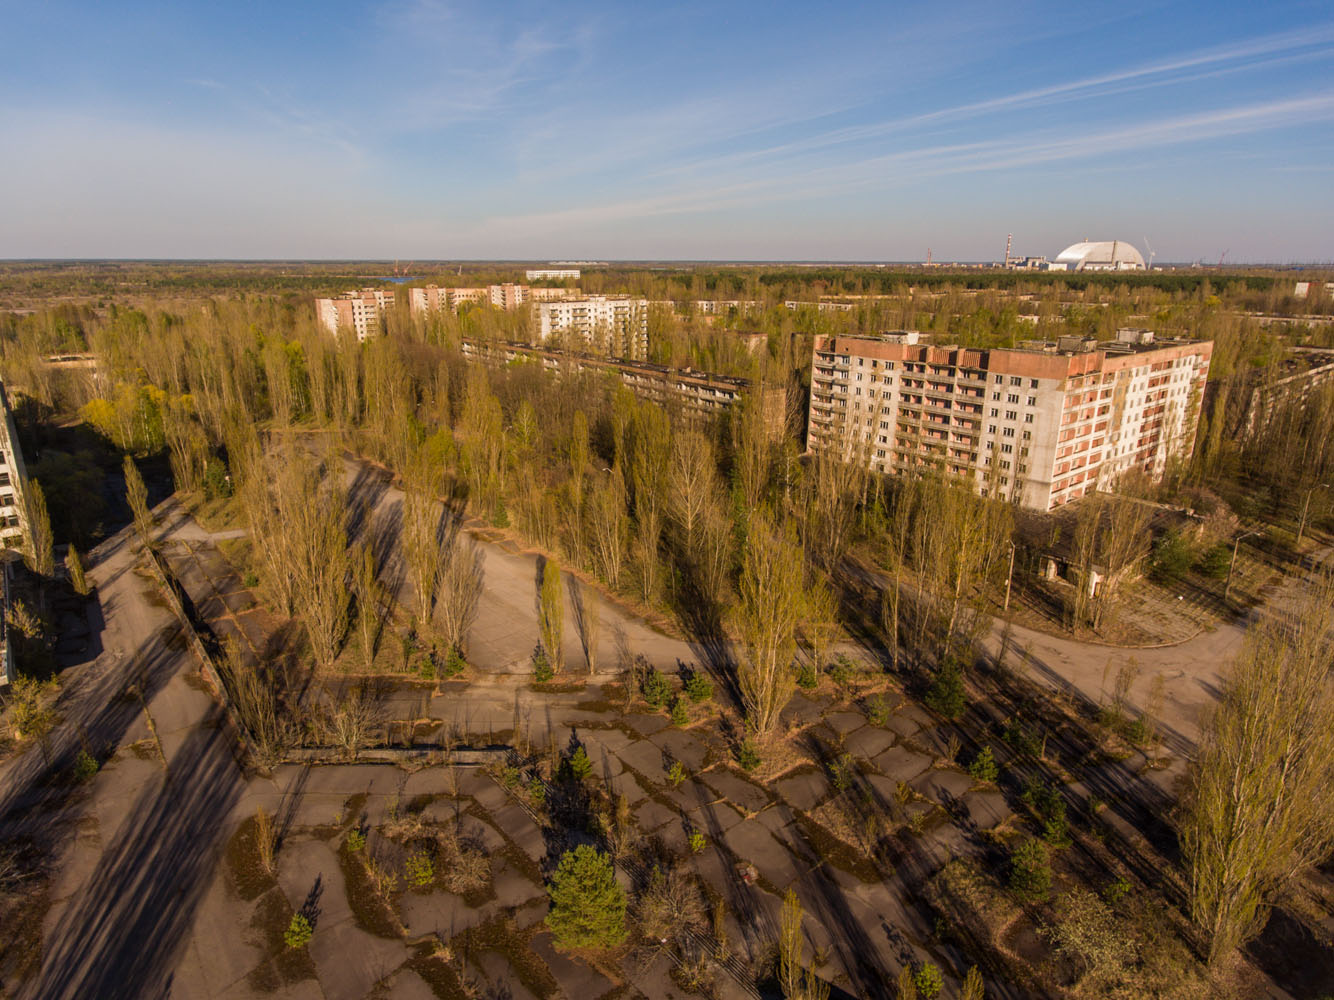 Die Sperrzone von Tschornobyl: alle Materialien der Expedition